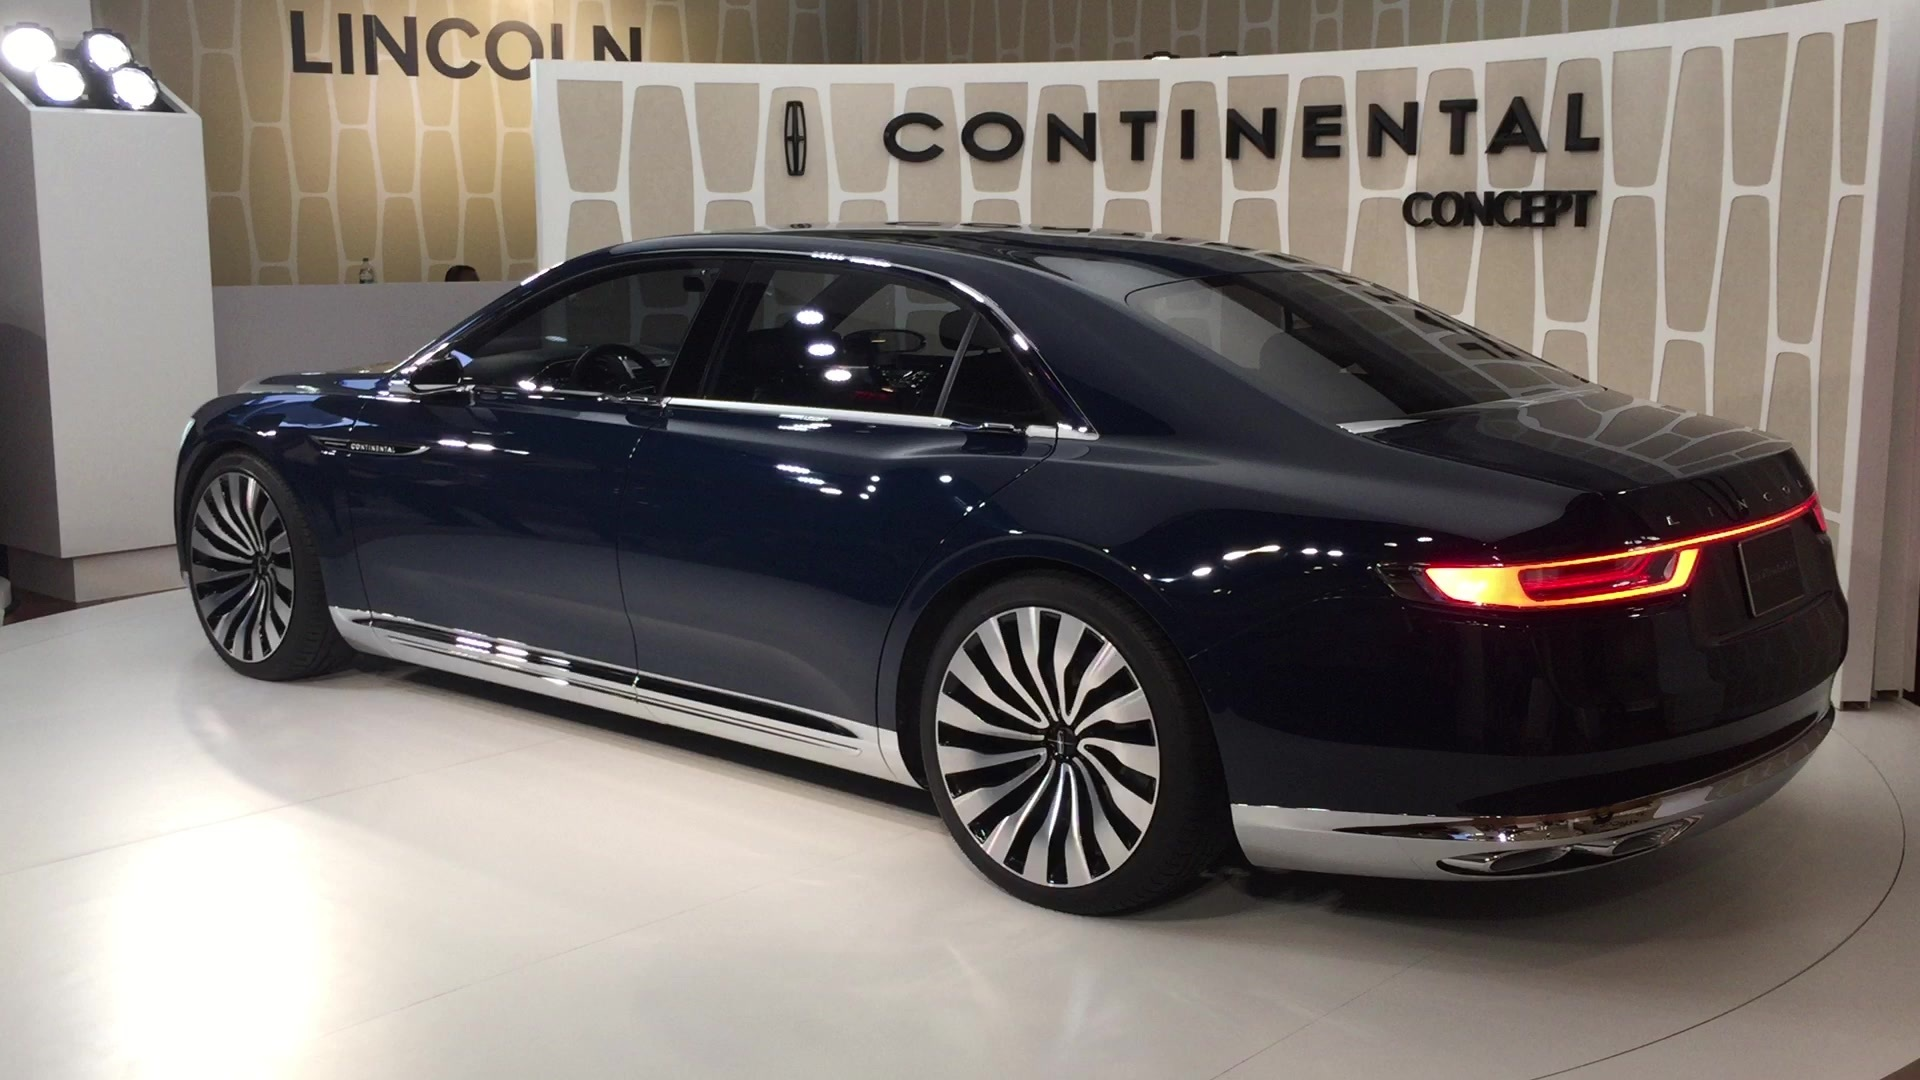 Black Book Car Values >> Auto Show Notebook: Legendary Continental name inspired ...